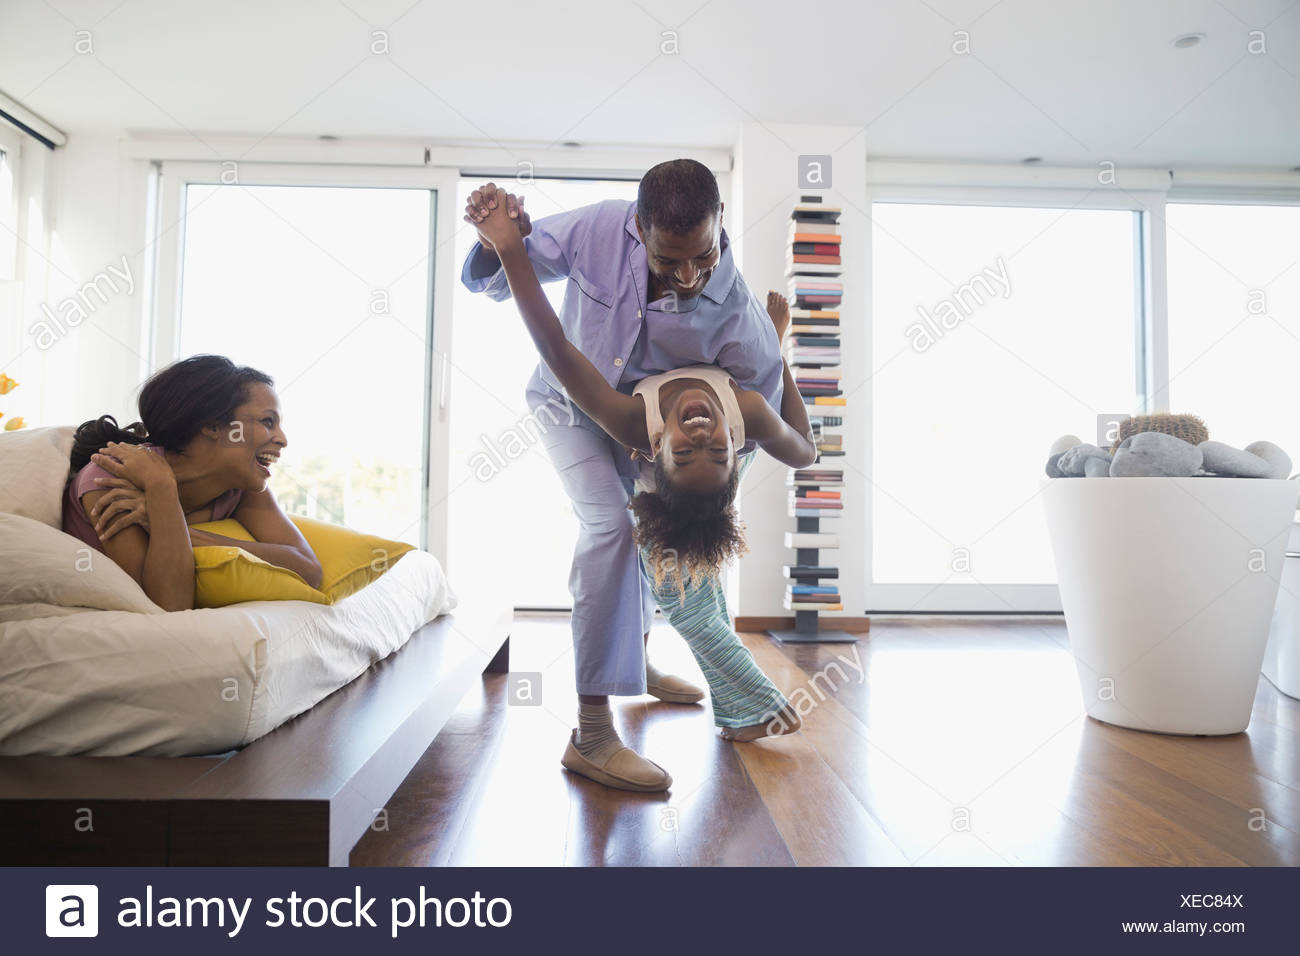 Cheerful father and daughter dancing in bedroom - Stock Image